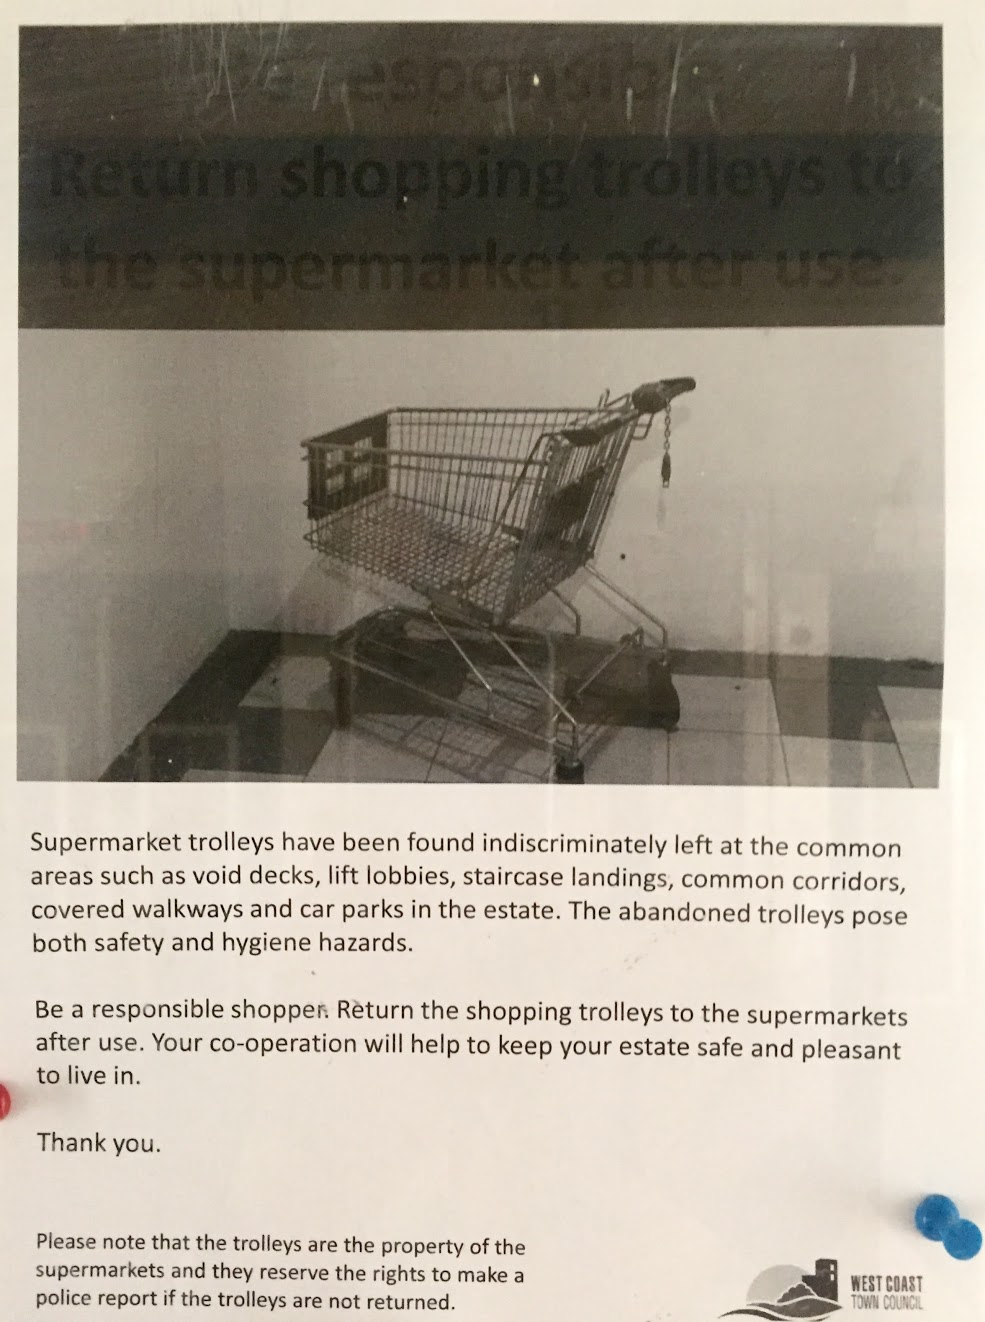 A notice about shopping cards abandoned in HDB void decks.